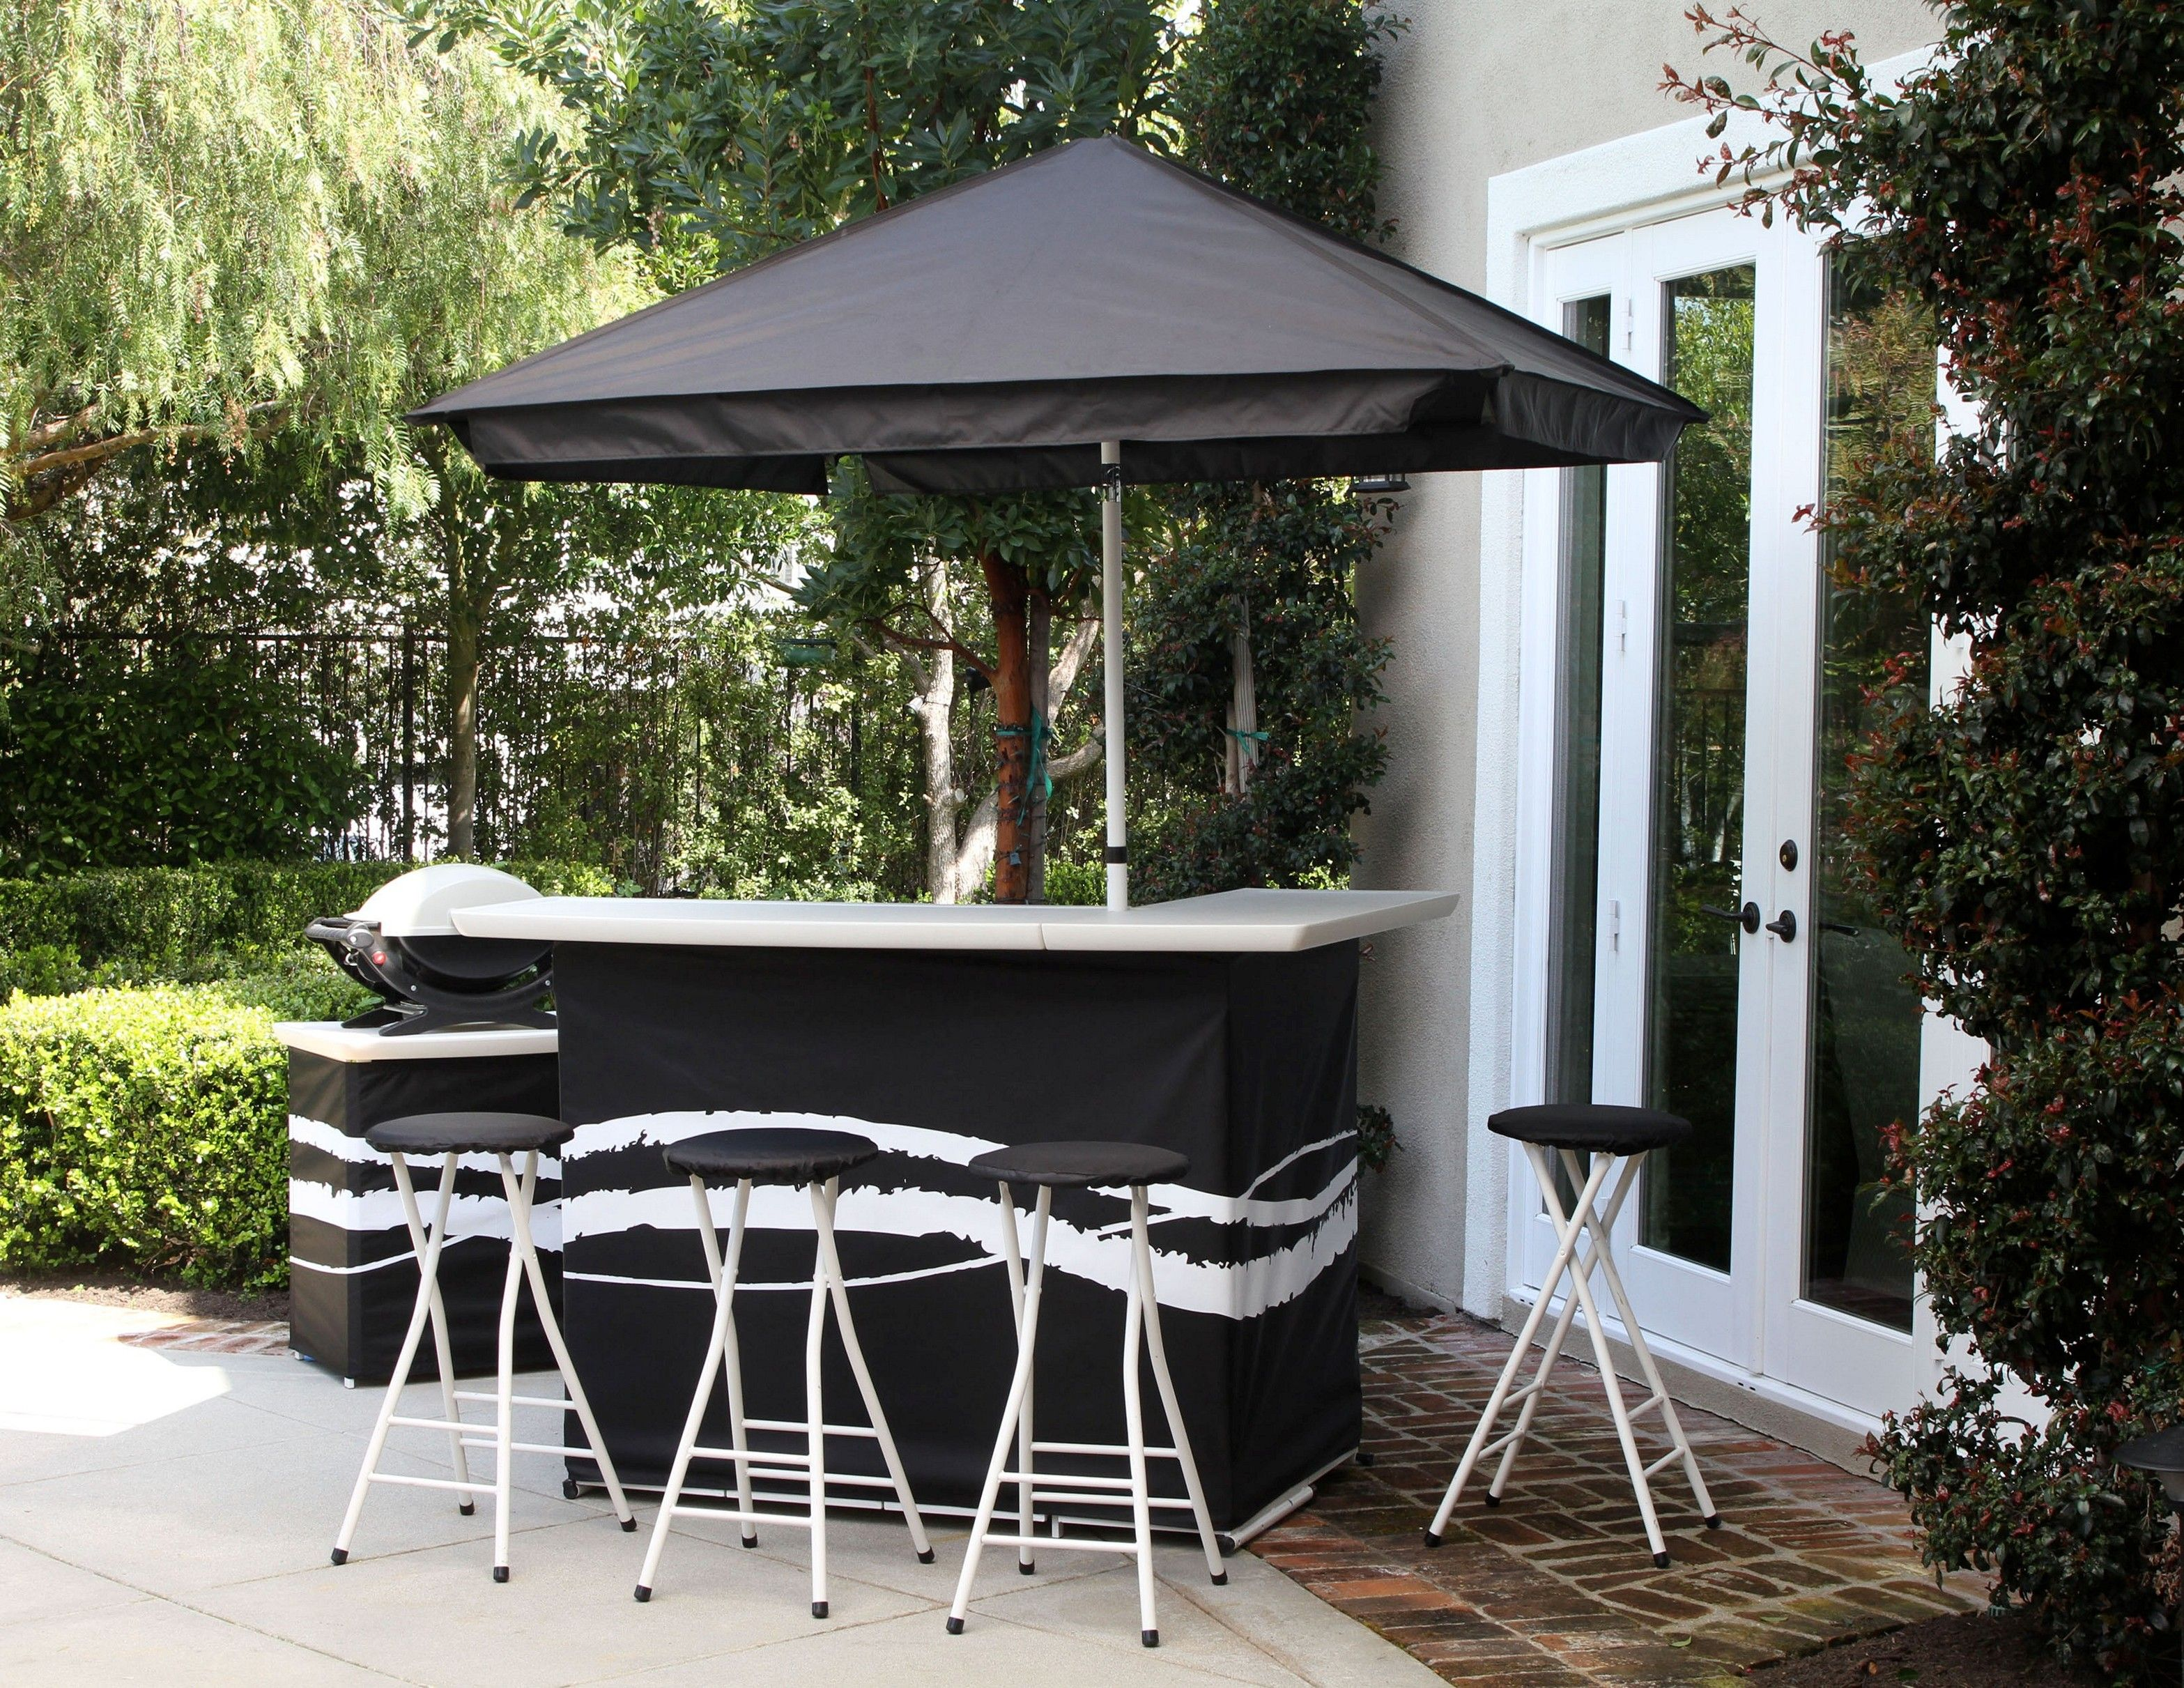 design backyard australia decor home for sale patio bar boost outdoor bars